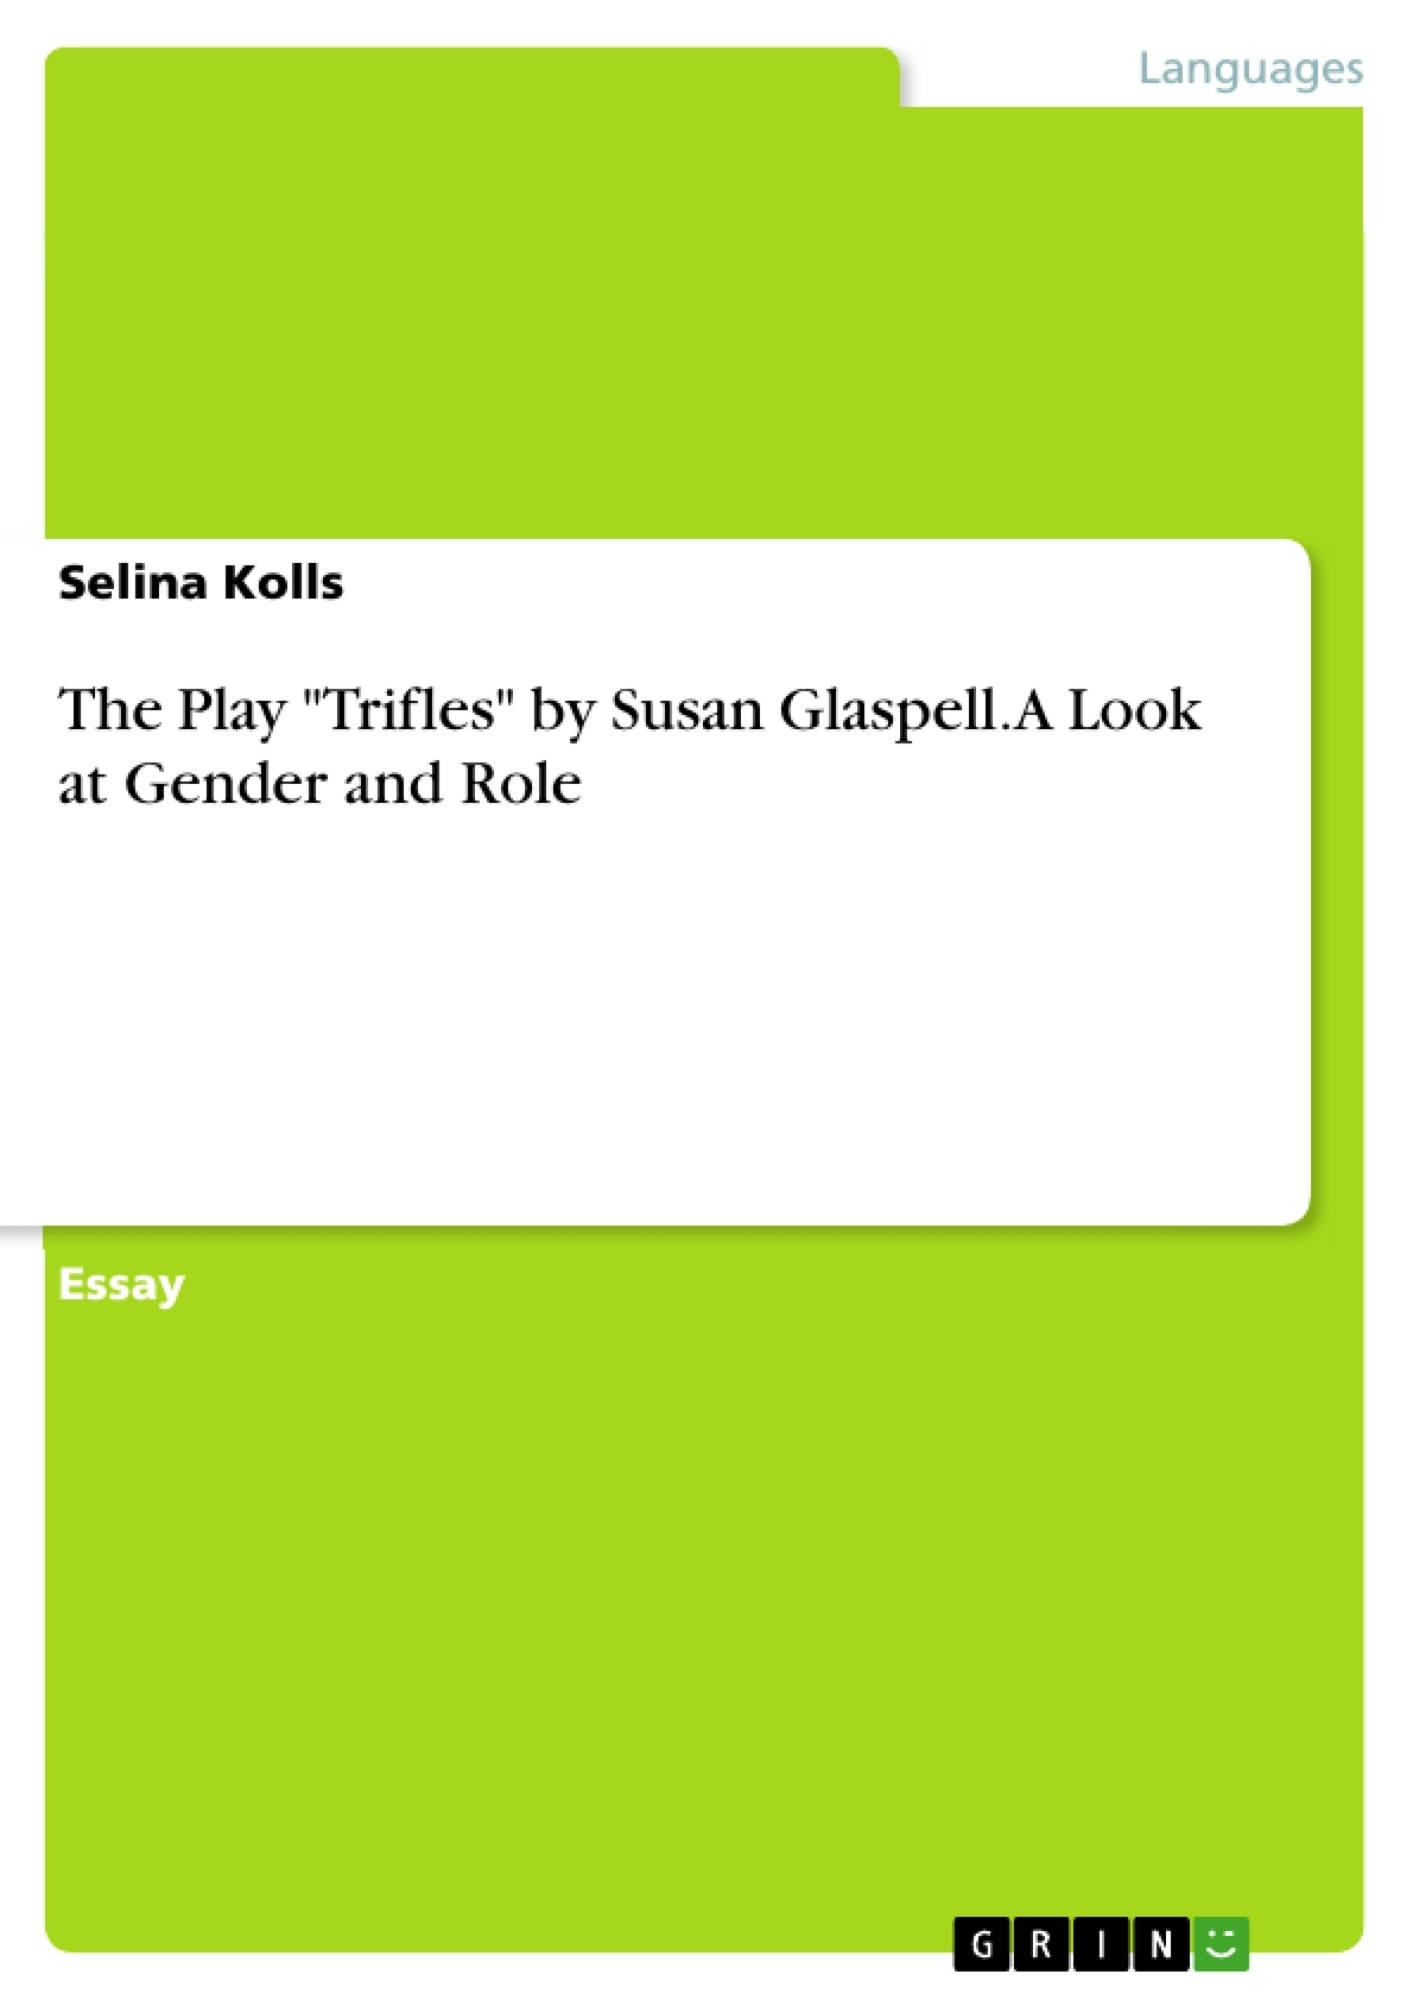 the play trifles by susan glaspell a look at gender and role upload your own papers earn money and win an iphone 7